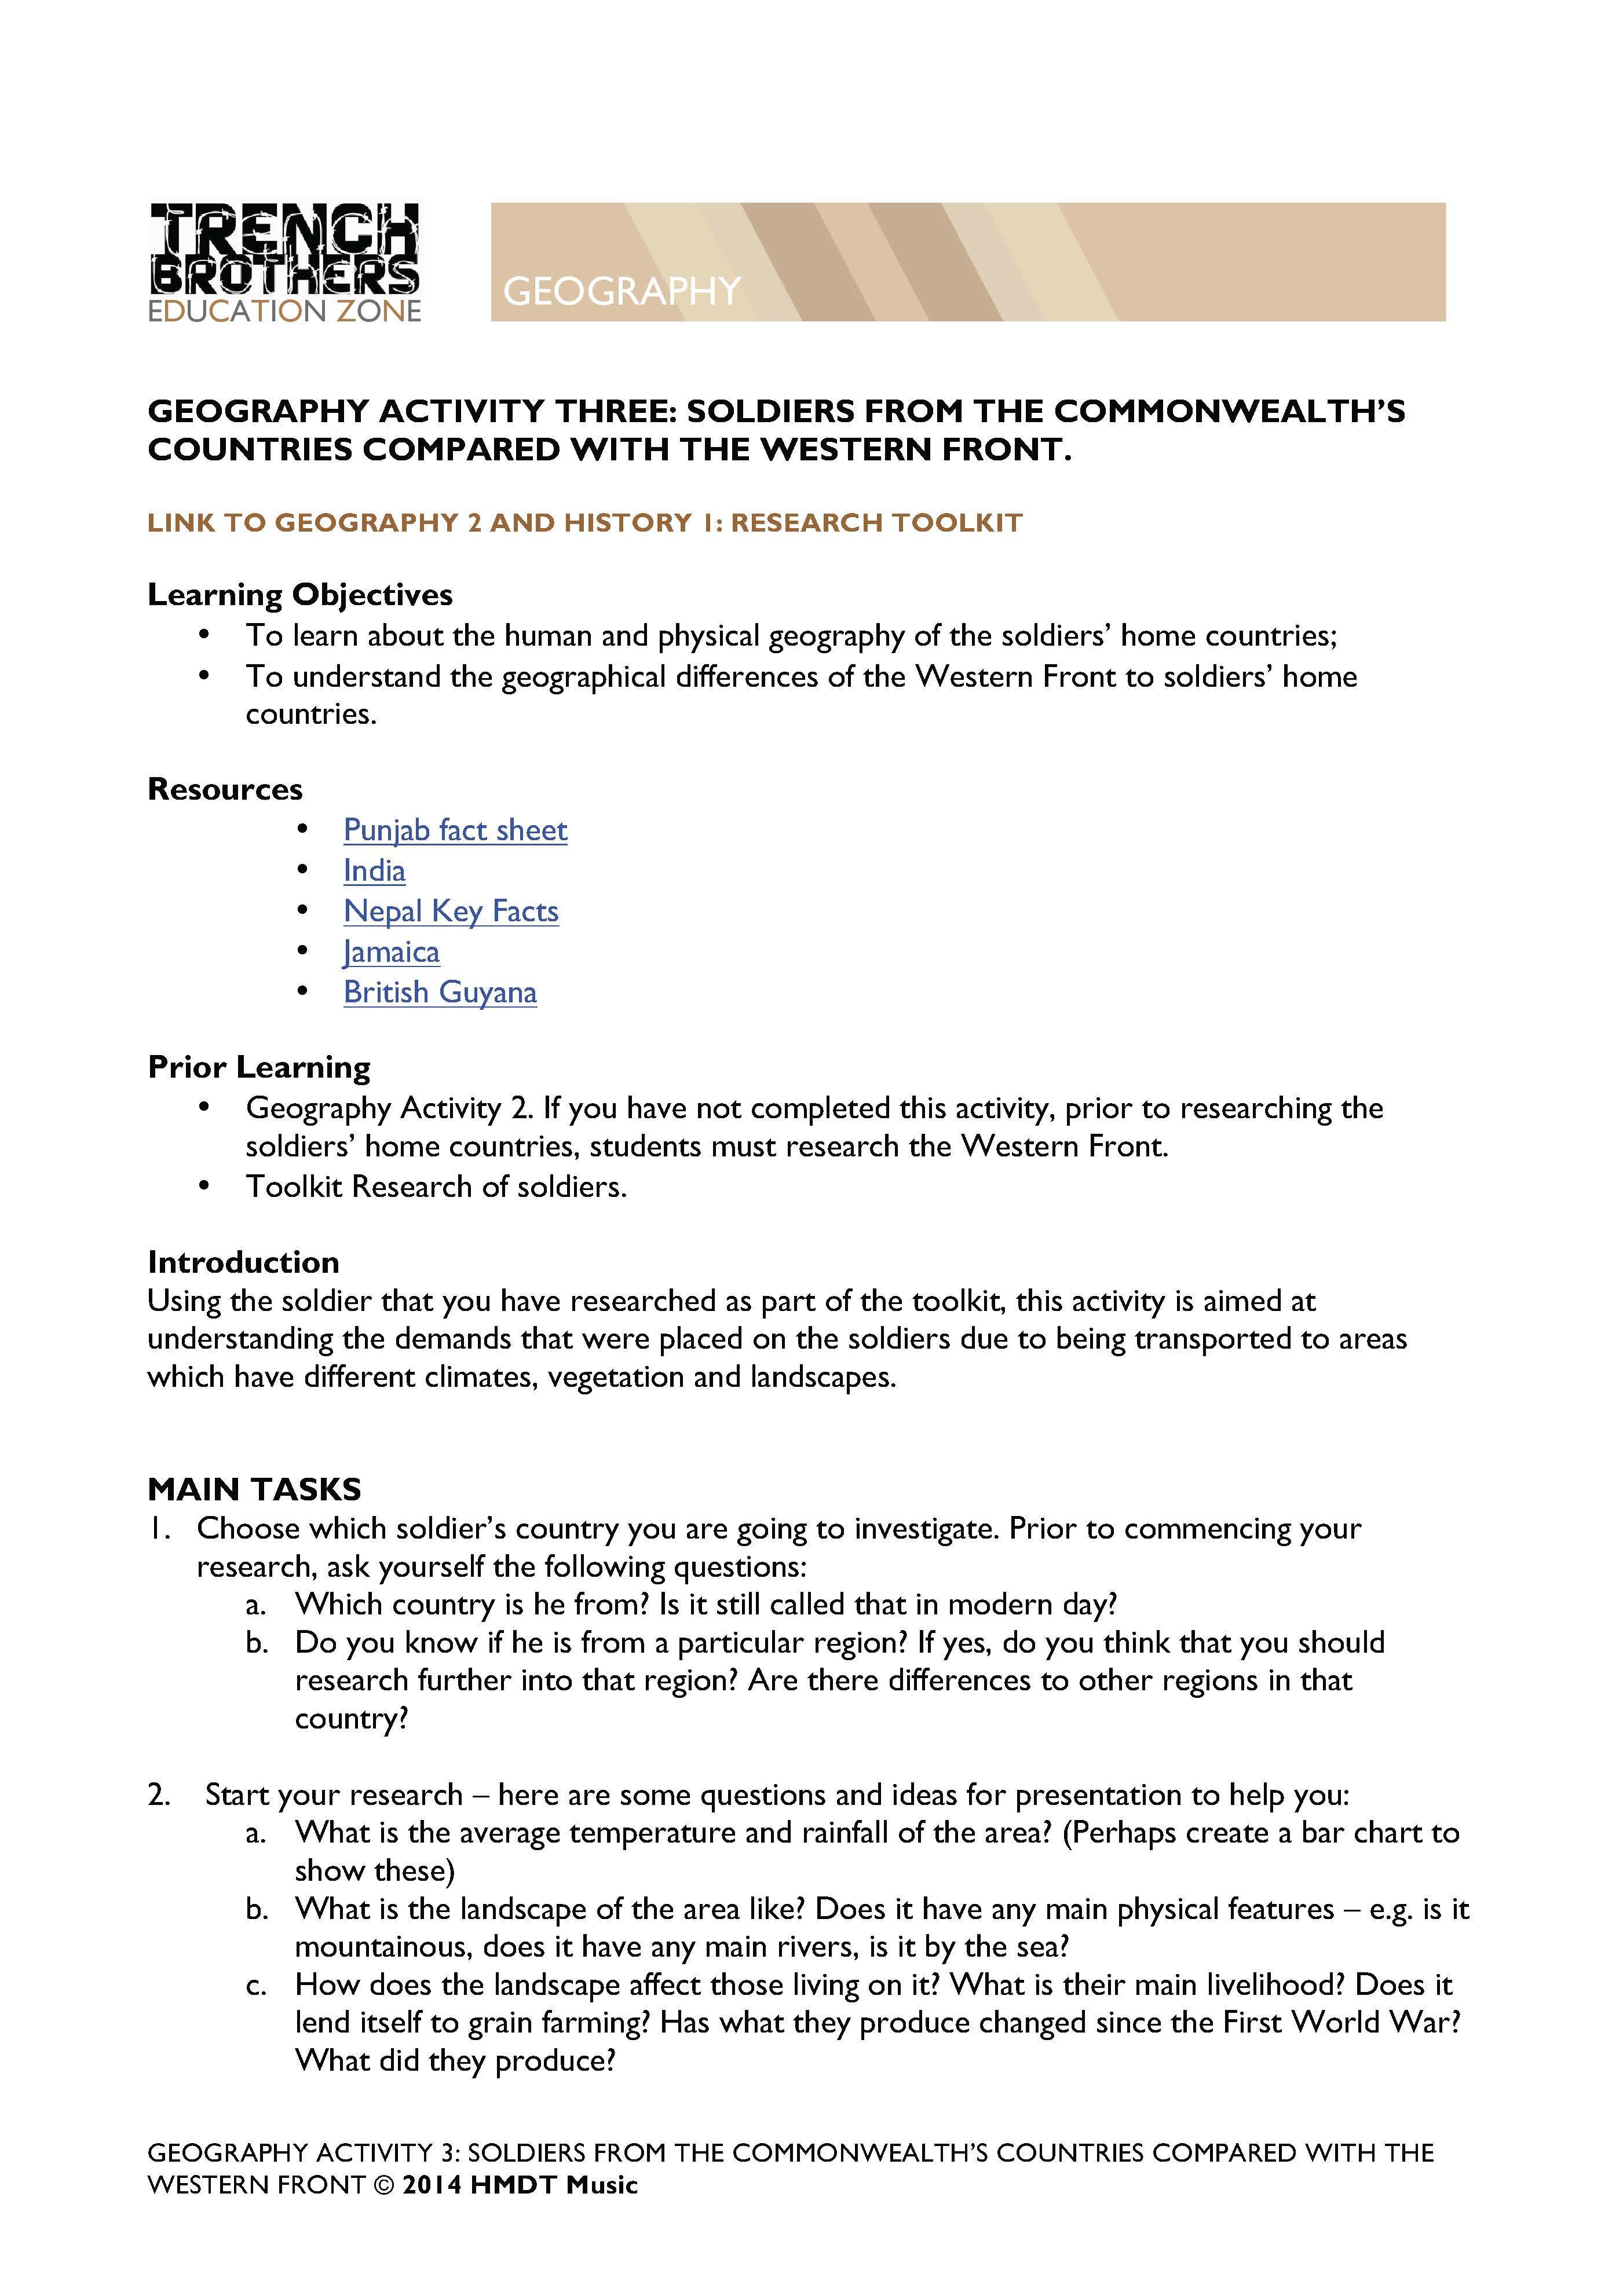 Worksheets Physical Geography Worksheets 6 geography trenchbrothers teaching resources learn about the human and physical of commonwealth soldiers home countries geographical differences between them weste